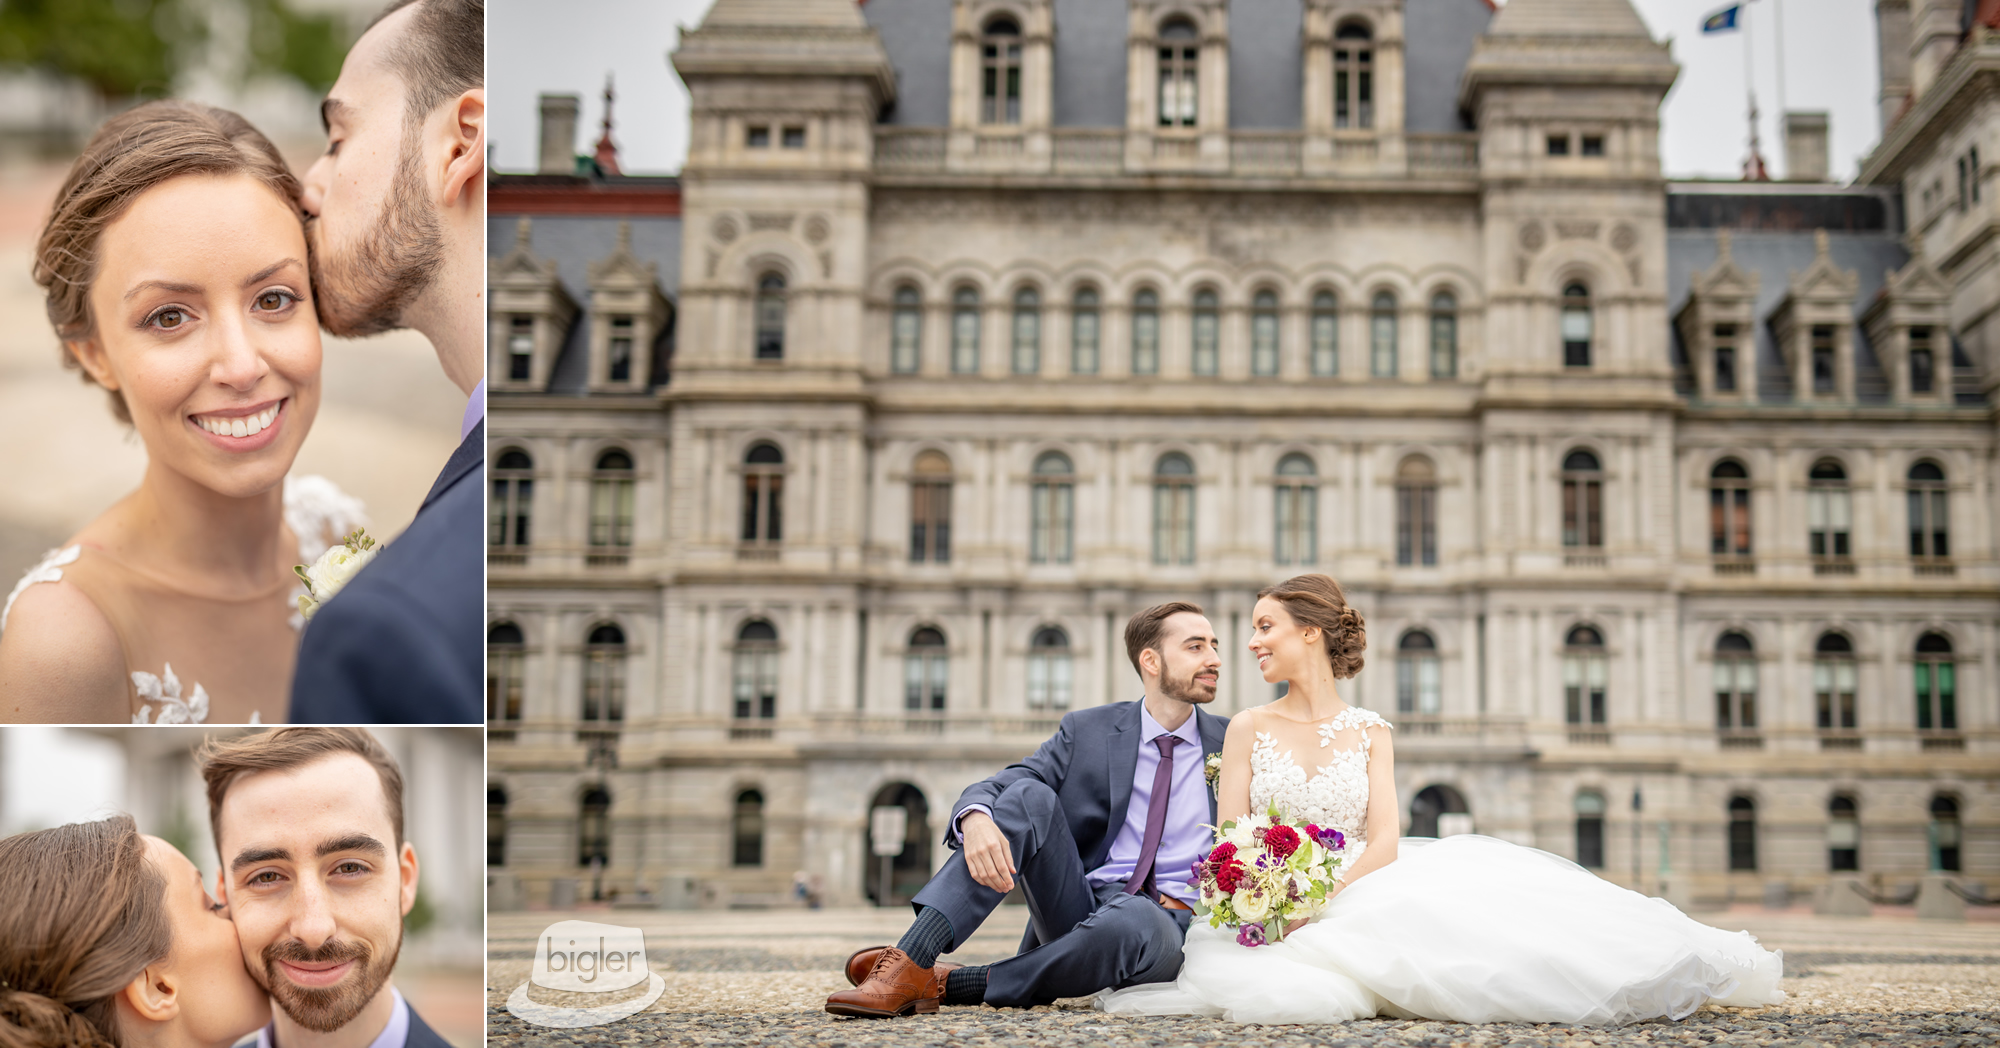 20181006_-_28_-_Michelle_&_Evan_Kiernan_Plaza_Wedding